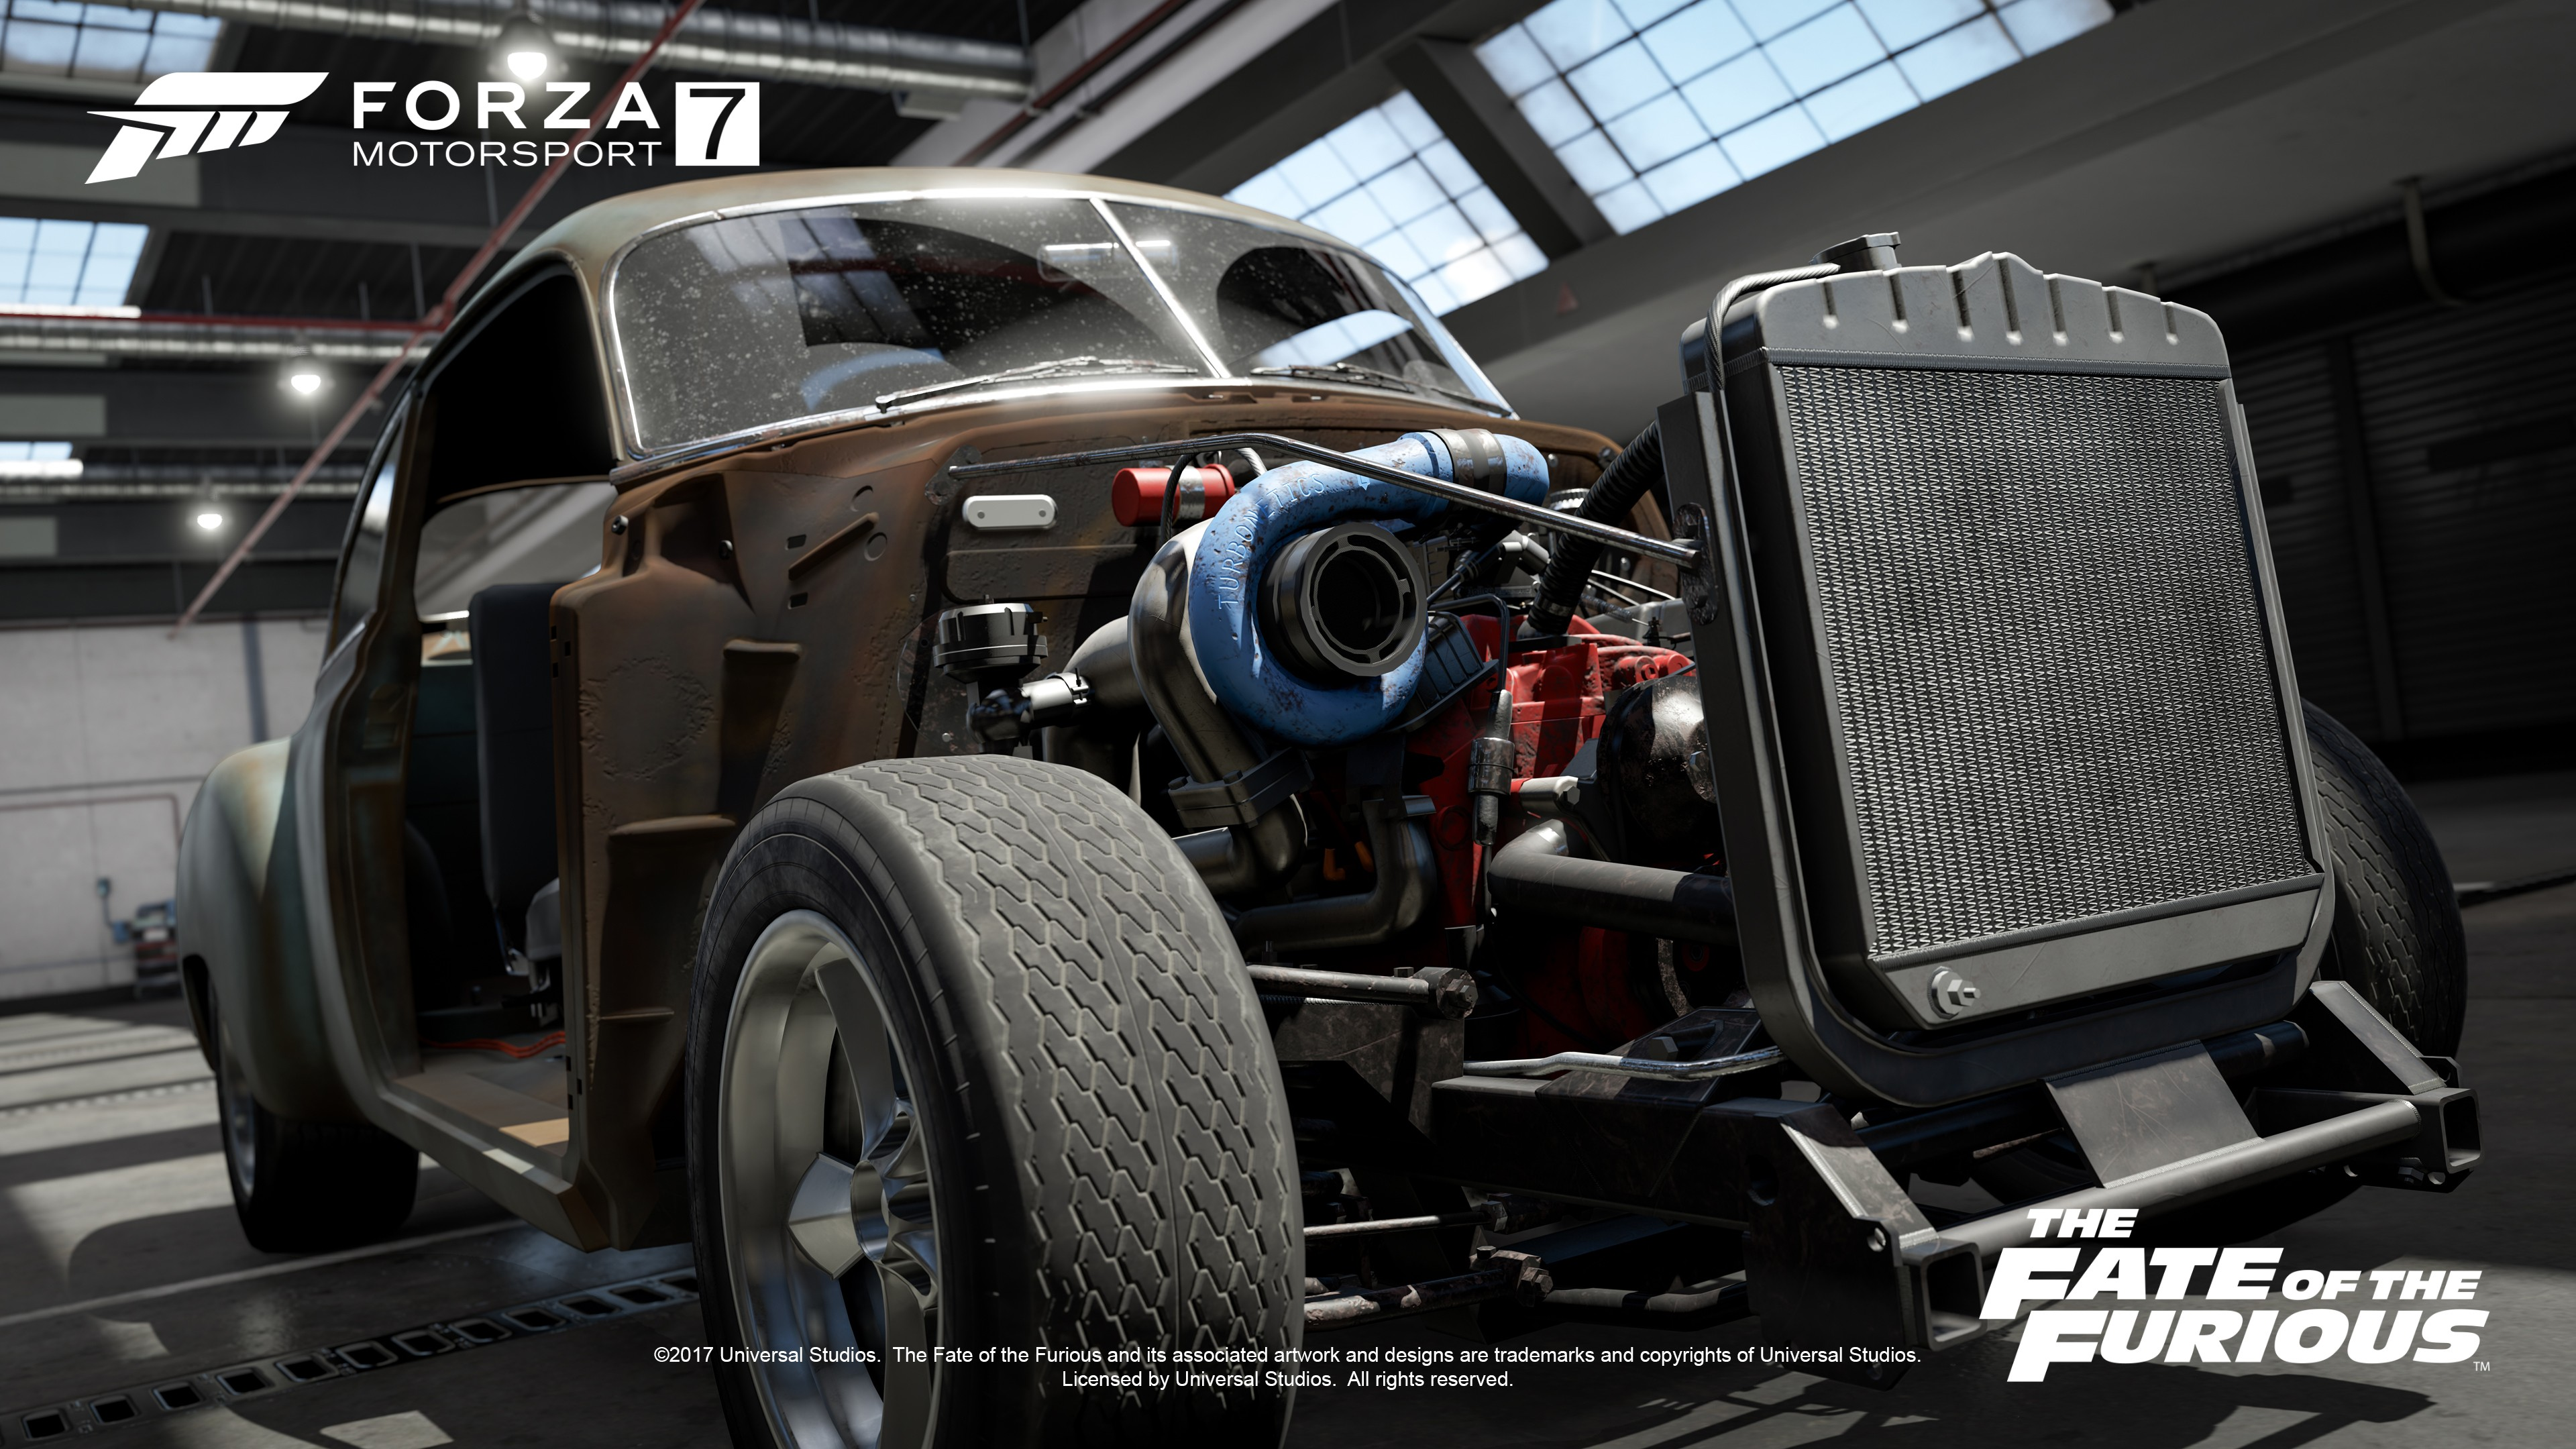 - - Forza Motorsport 7 4K, The Fate of the Furious, The Fate of the Furious Car Pack, Скриншот, Форсаж